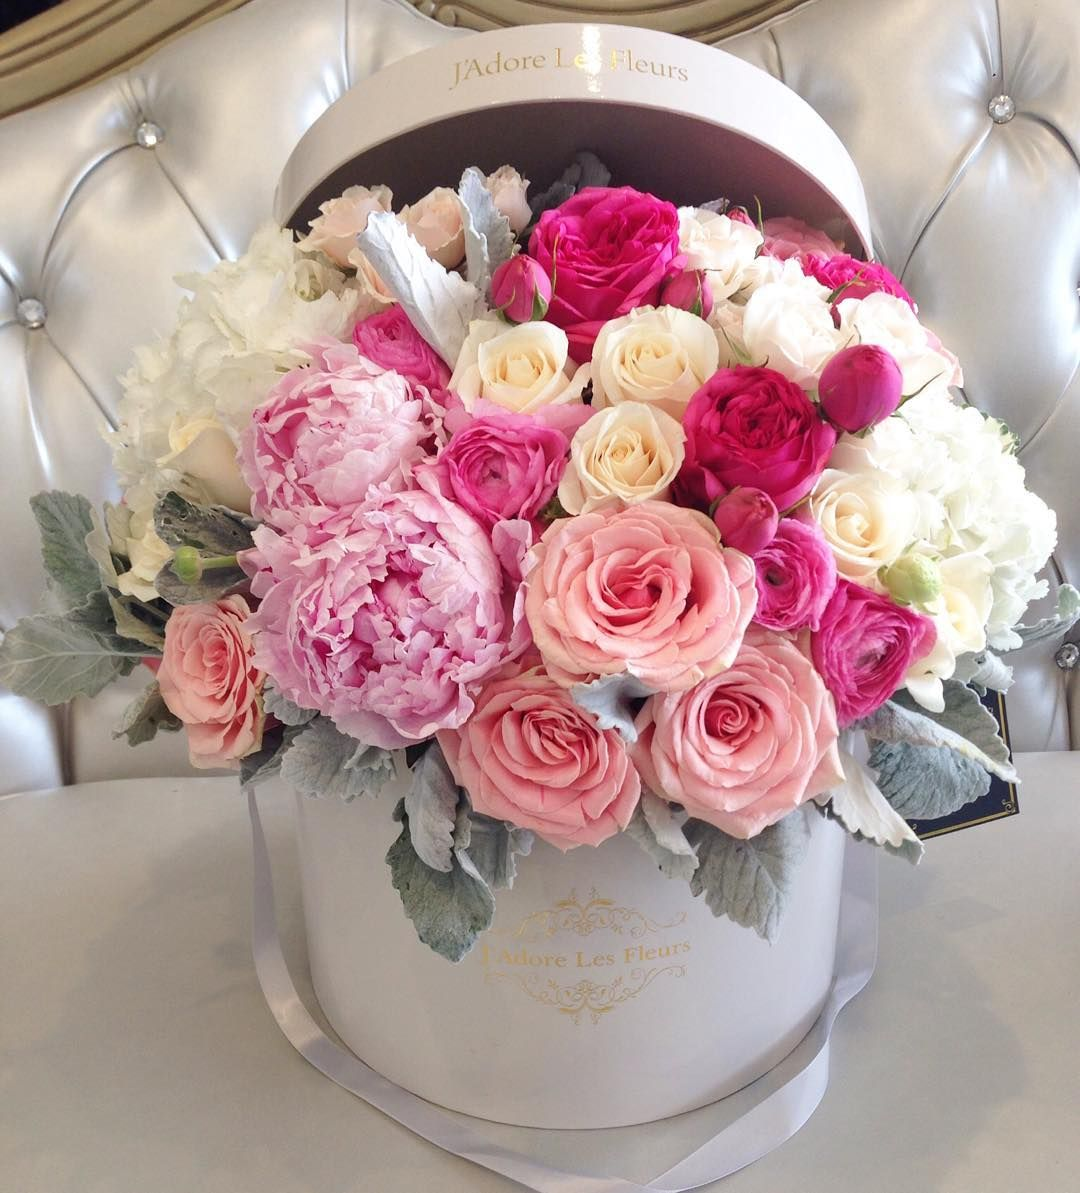 Jadorelesfleurs flowers pinterest flowers beautiful flowers jadorelesfleurs flower boxespretty flowersflower bouquetsflower izmirmasajfo